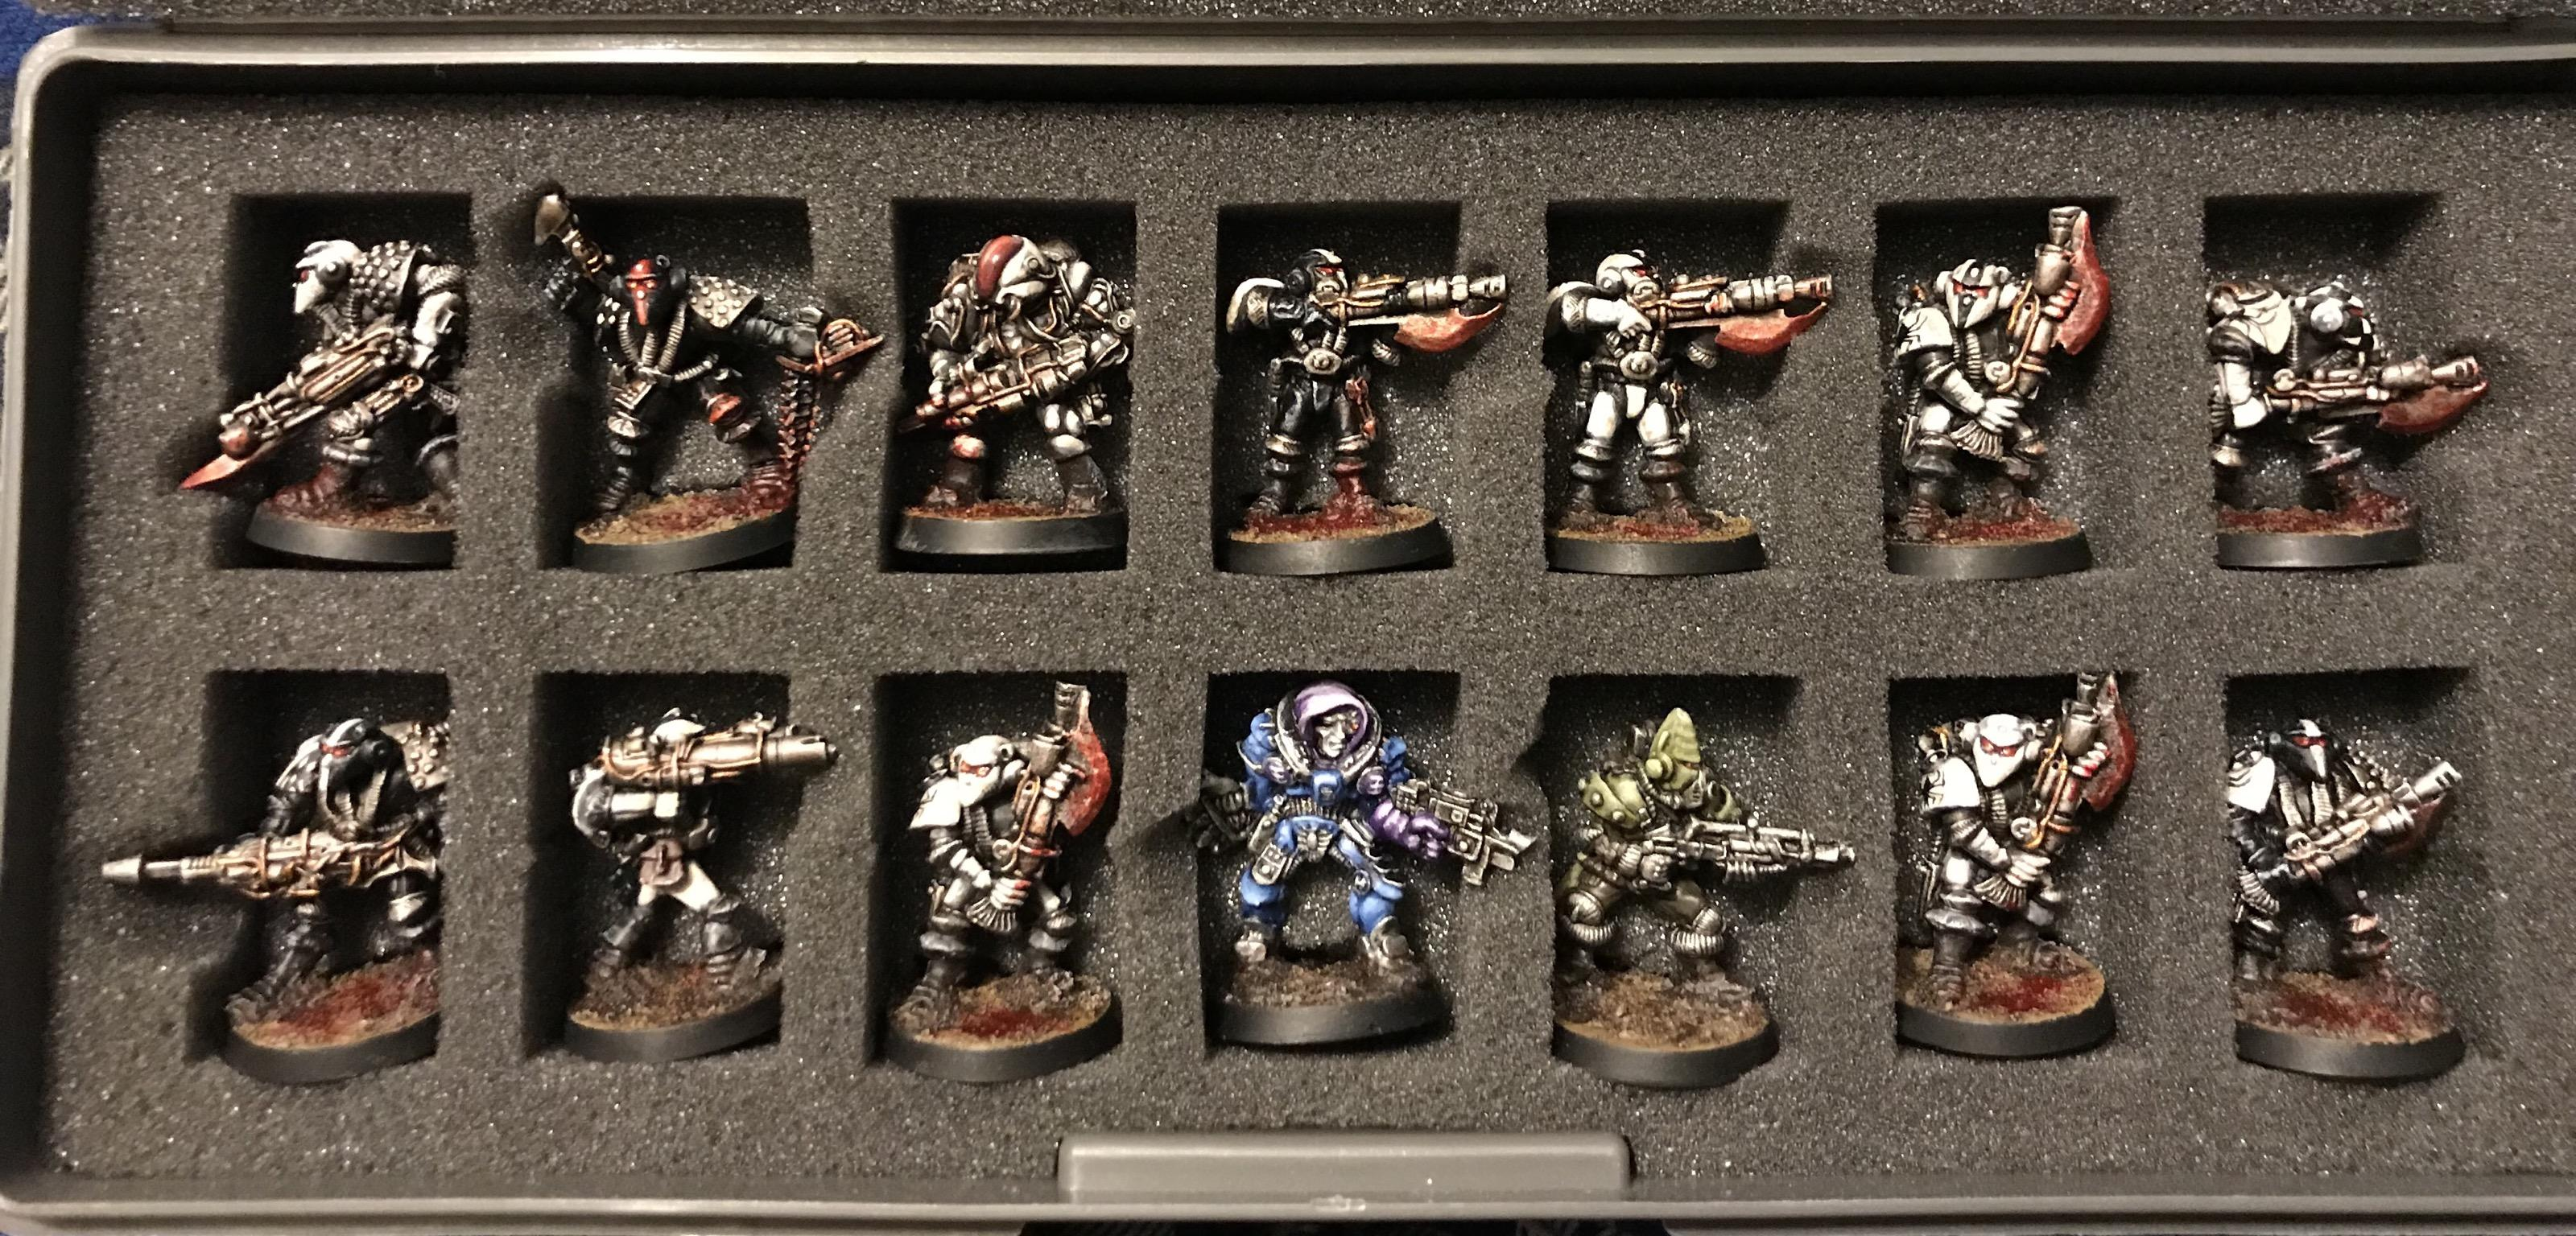 117, 2nd, 41st, Adeptus, Adventurers, And, Armor, Astartes, Badab, Battle, Black, Blade, Blue, Bolters, Boltguns, Bounty, Brother, Brothers, Brutal, C100, Captain, Chaos, Chaotic, Chapter, Chapters, Combi, Combi-bolter, Combi-disintegrator, Combi-weapon, Corsairs, Daemonhunter, Damned, Dark, Darkness, Deep, Demonhunter, Disintegrator, Eye, Far, Fj, Founding, Future, Gate, God, Gods, Grim, Heavy, Heresy, Hobby, Horus, Human, Humans, Hunter, Imperial, Imperium, Inquisition, Inquisitor, Kaos, Kill, Legionaries, Legionnaire, Lord, Lost, Malal, Malice, Malleus, Man, Mankind, Millennium, Of, Oldhammer, Ordo, Ordos, Painted, Pirate, Pirates, Power, Power Armor, Power Armored, Powers, Psionic, Psyker, Purple, Pyro, Pyromaniac, Radical, Raiders, Rakkir, Realms, Recon, Red, Reference, Renegade, Renegades, Retro, Rogue, Ruinous, Runner, Second, Shadow, Slaves, Soldier, Space, Space Marines, Spartan, Spider, Spiders, Squad, Successor, Survivors, Sylo, Tannhäuser, Tannhauser, Team, Teams, Terror, To, Trader, Traders, Traitor, Trooper, Troopers, Troops, Unit, Ventolin, Veteran, Void, War, Warhammer 40,000, Warhammer Fantasy, Warp, Weapon, White, Widow, Xuren